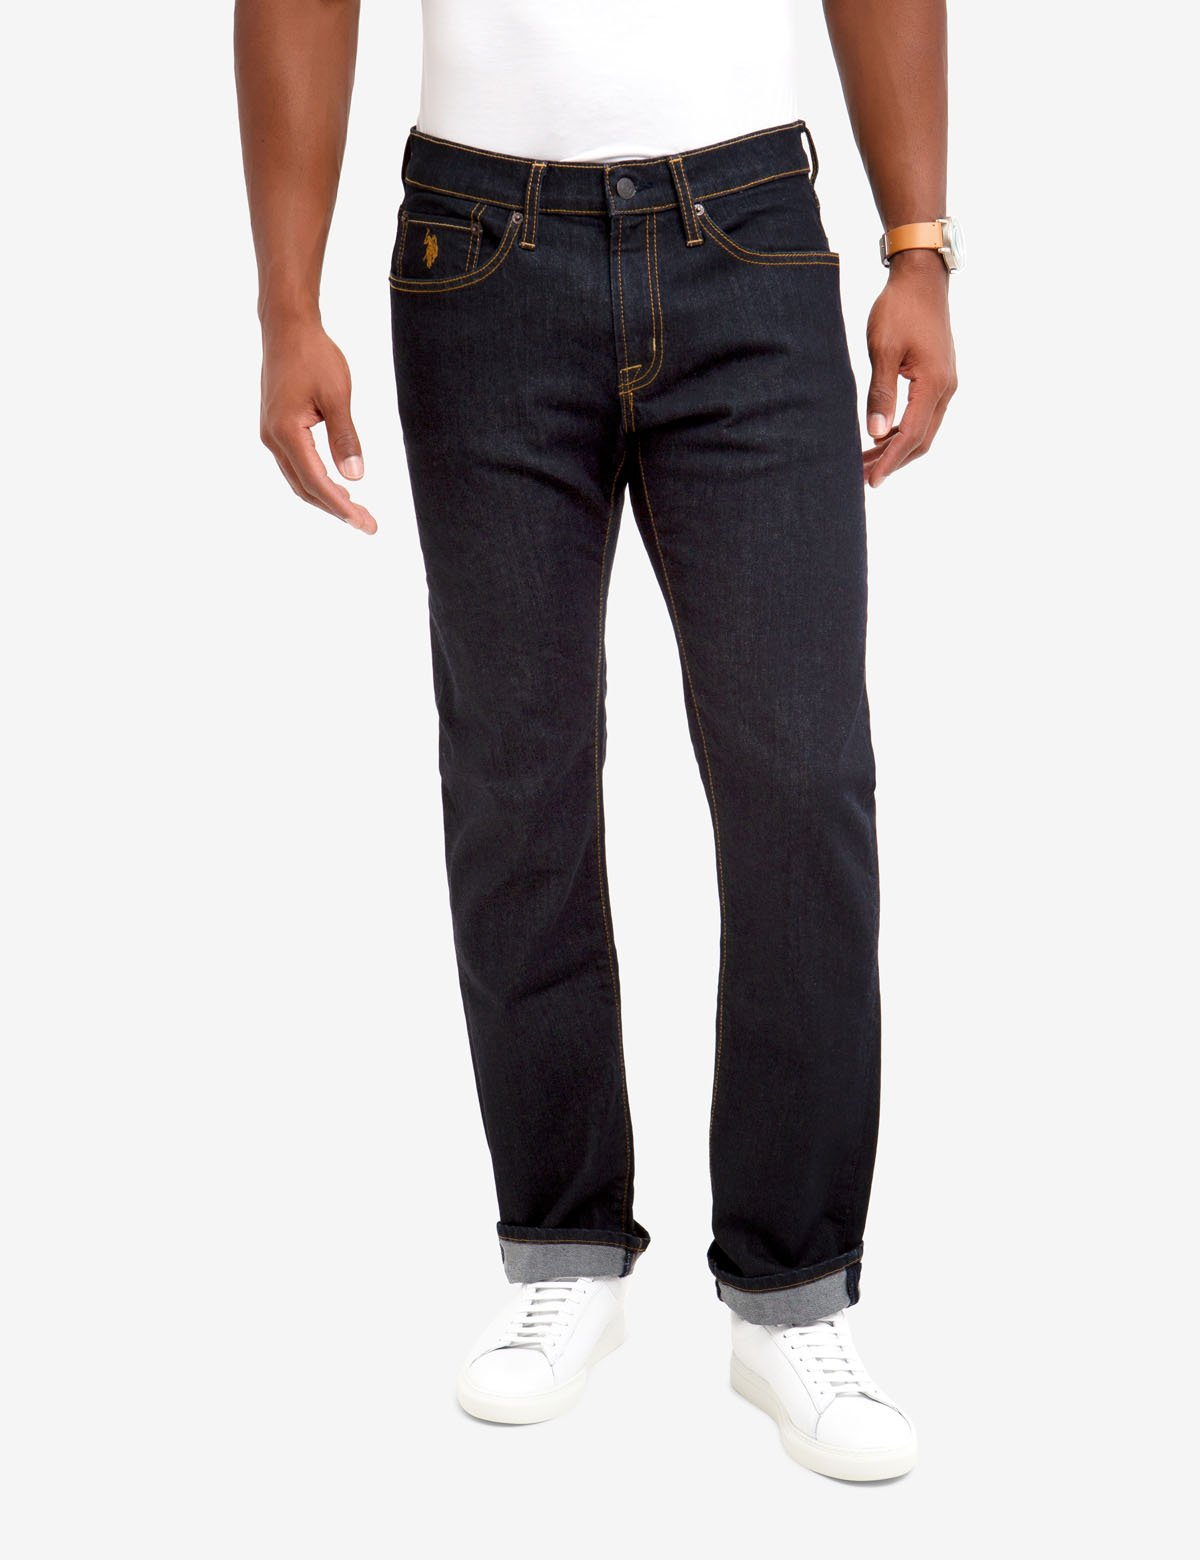 Mens Slim Straight Fit Jeans